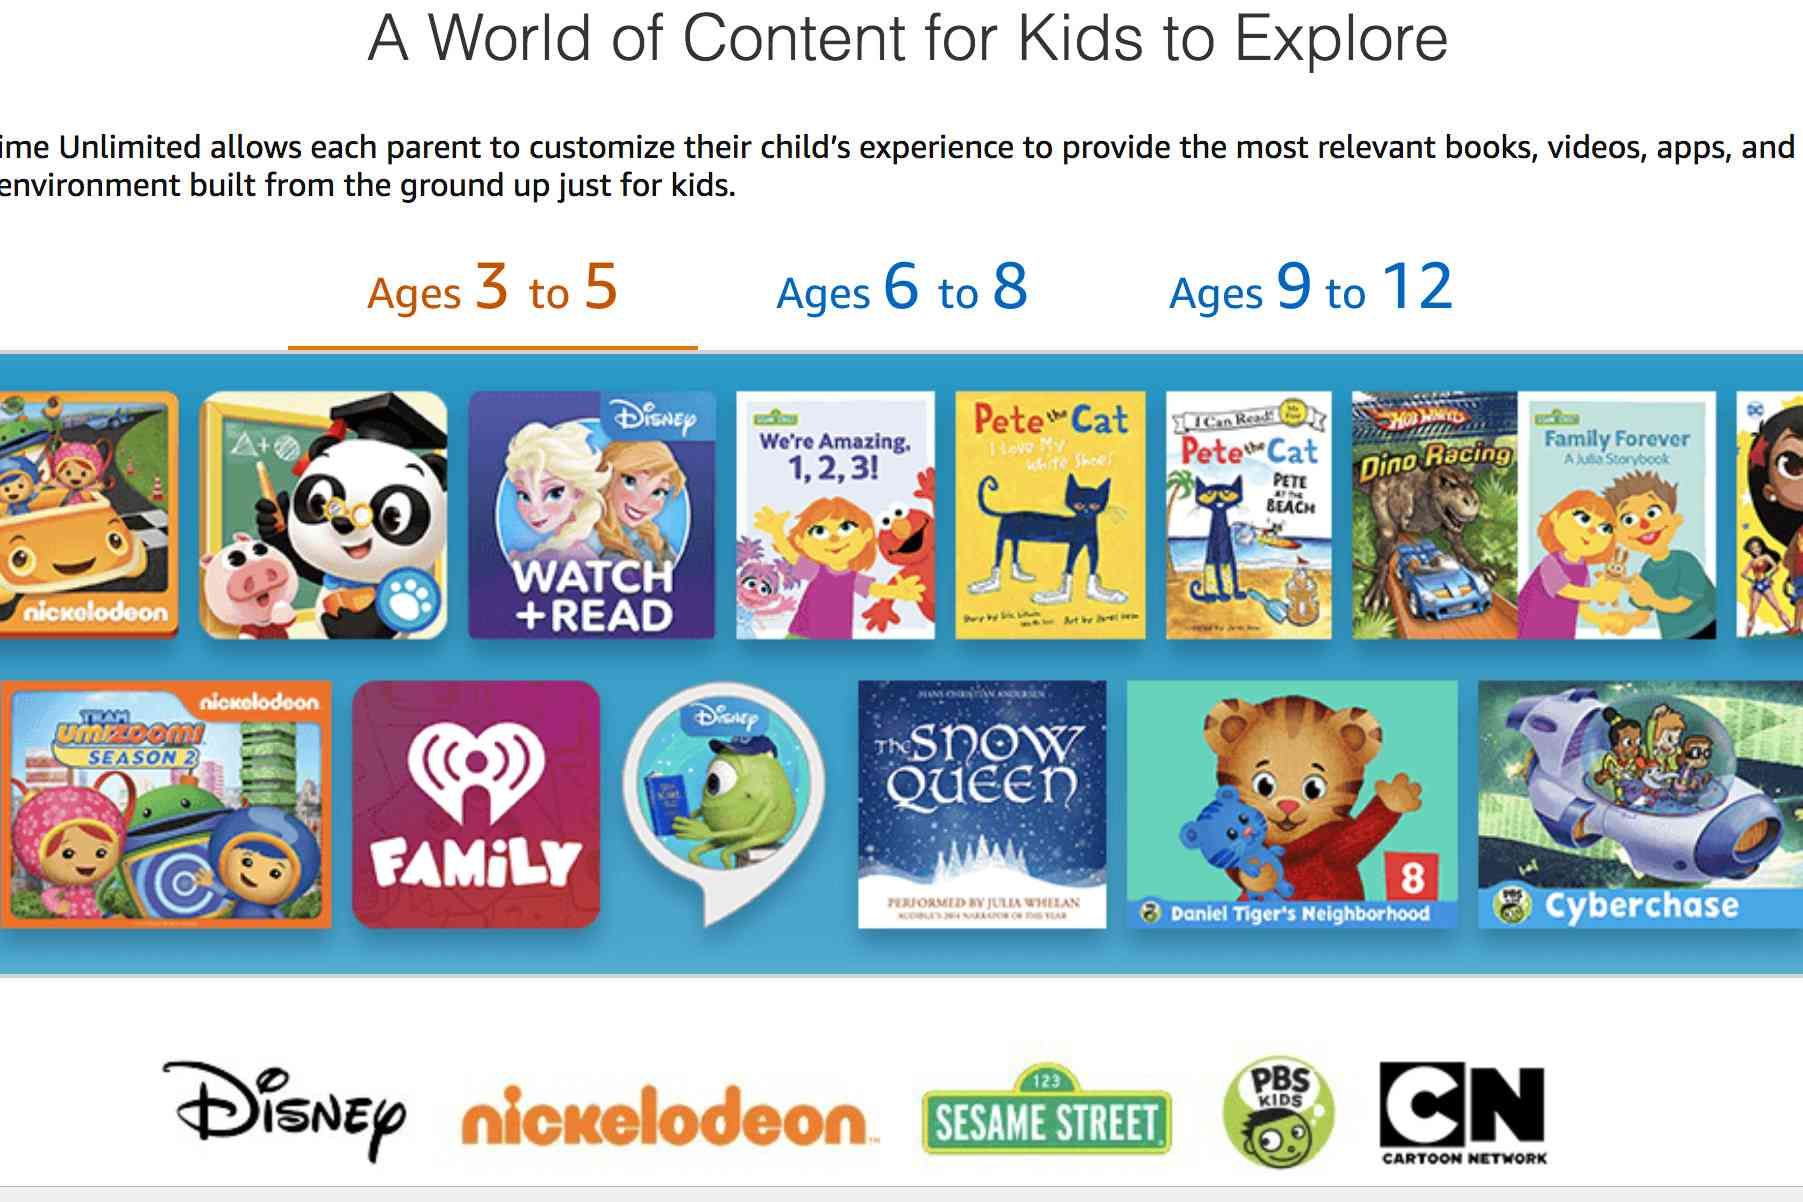 Screenshot of Amazon FreeTime Unlimited, showing content for 3-5 year-olds